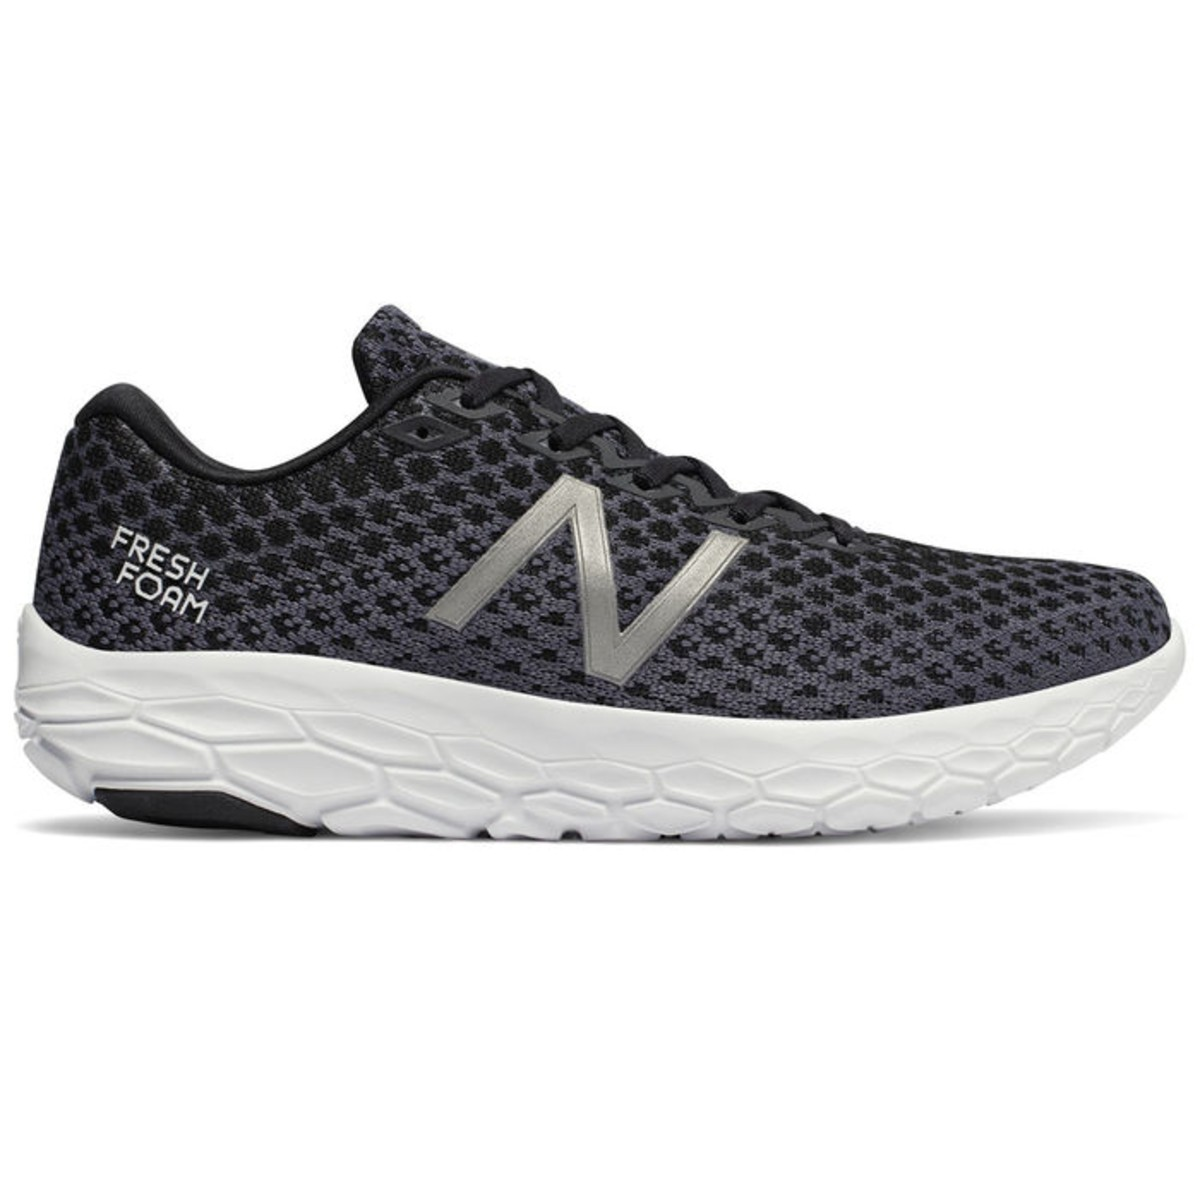 NB-Fresh-Foam-Beacon Men's Black/Magnet